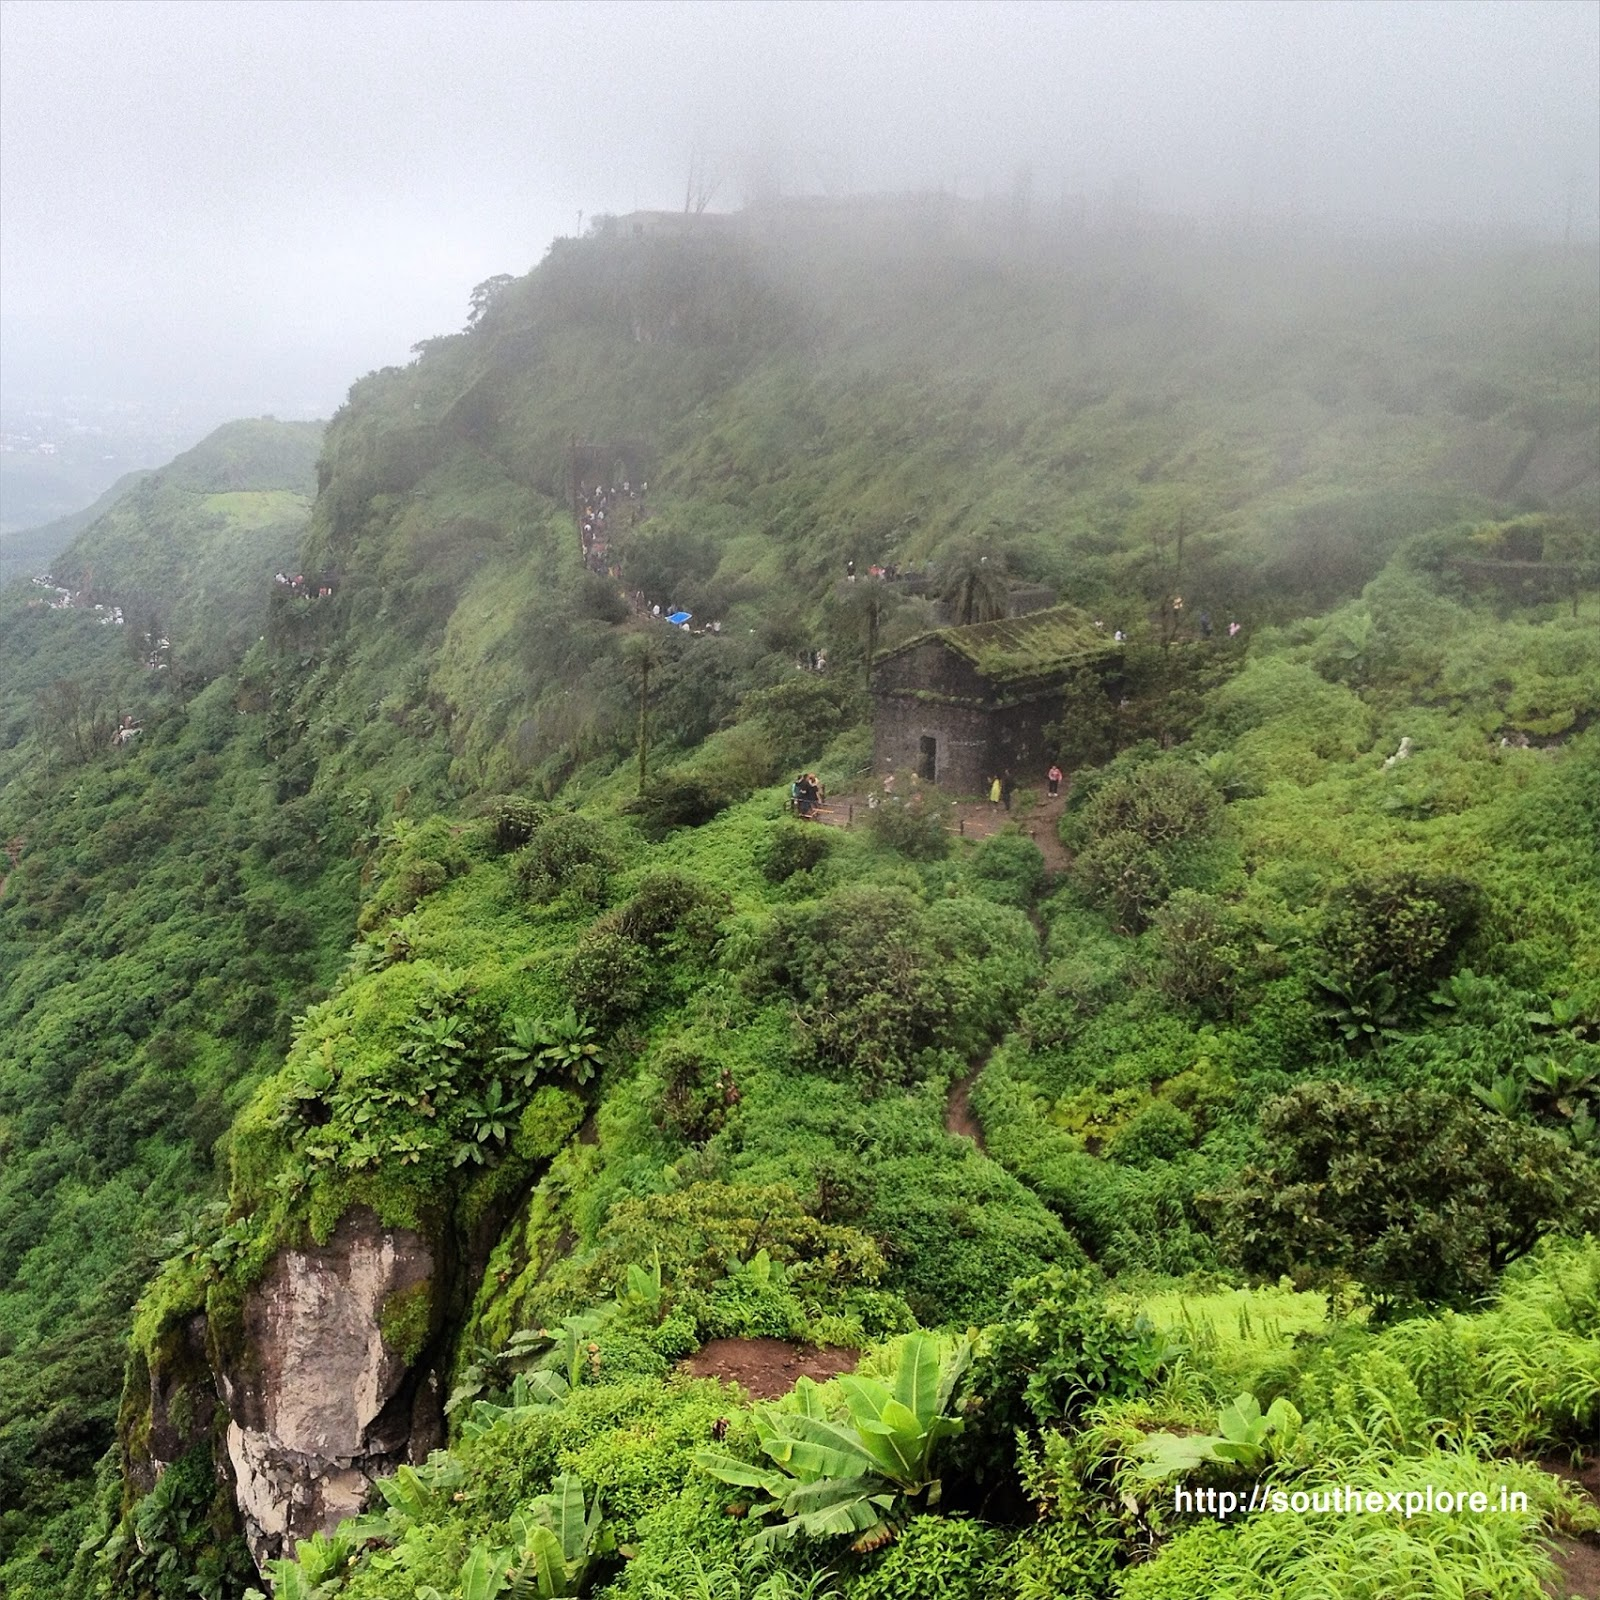 Tourist Places To Visit In Pune: SINHAGAD FORT PUNE MAHARASHTRA